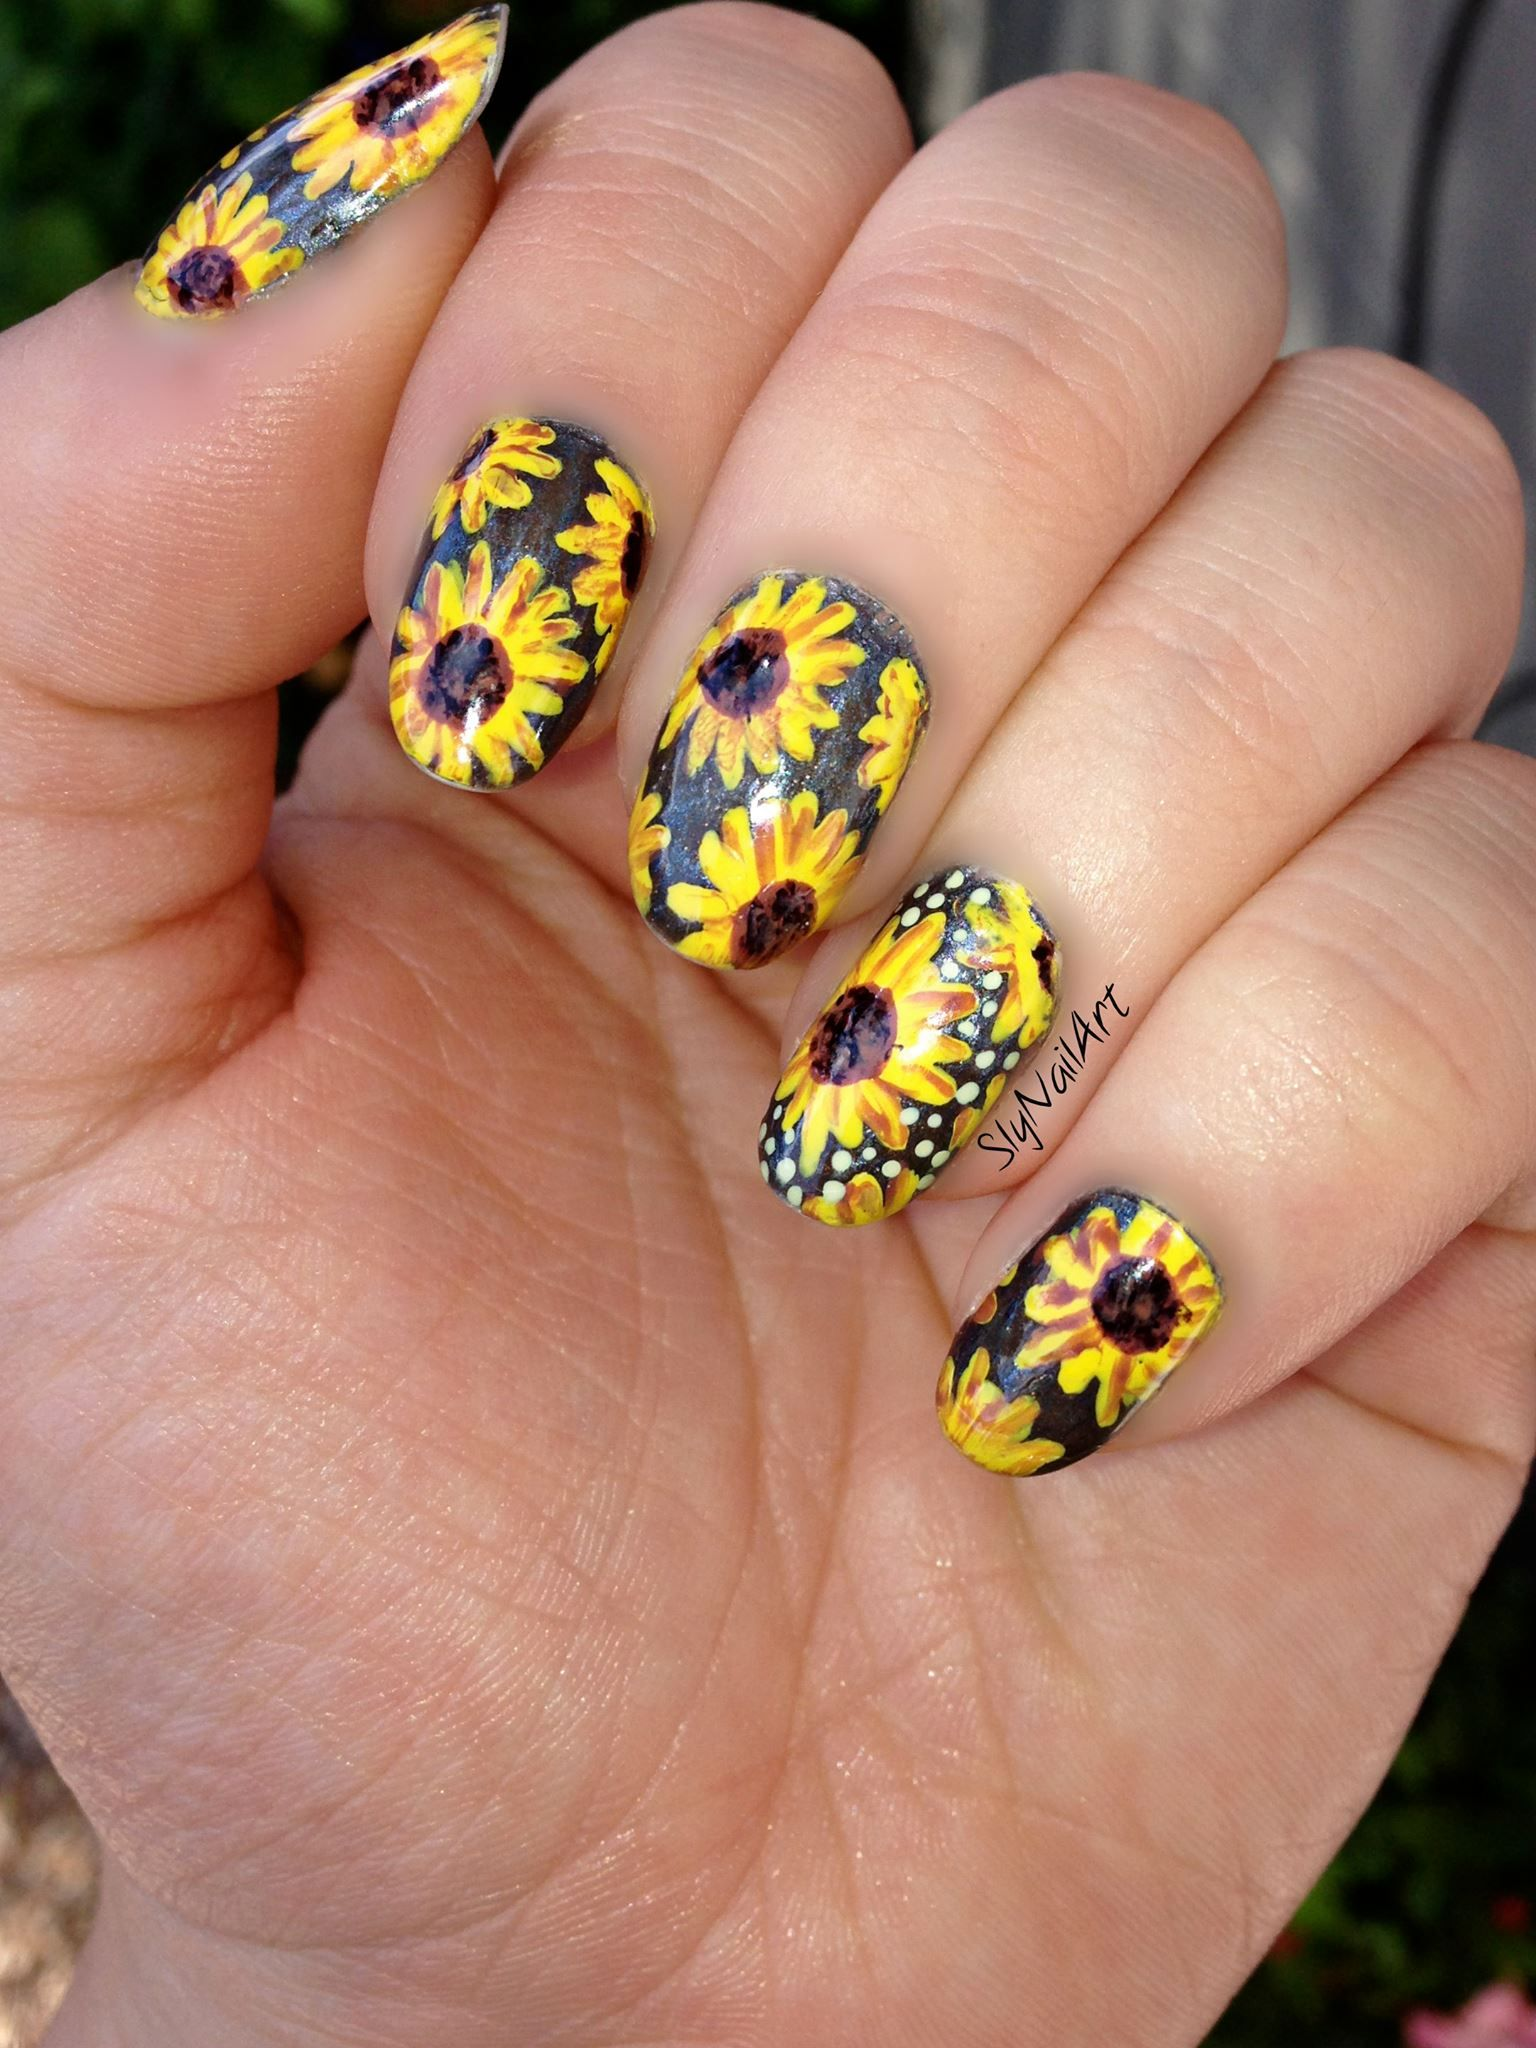 sunflower nail art. -slynailart